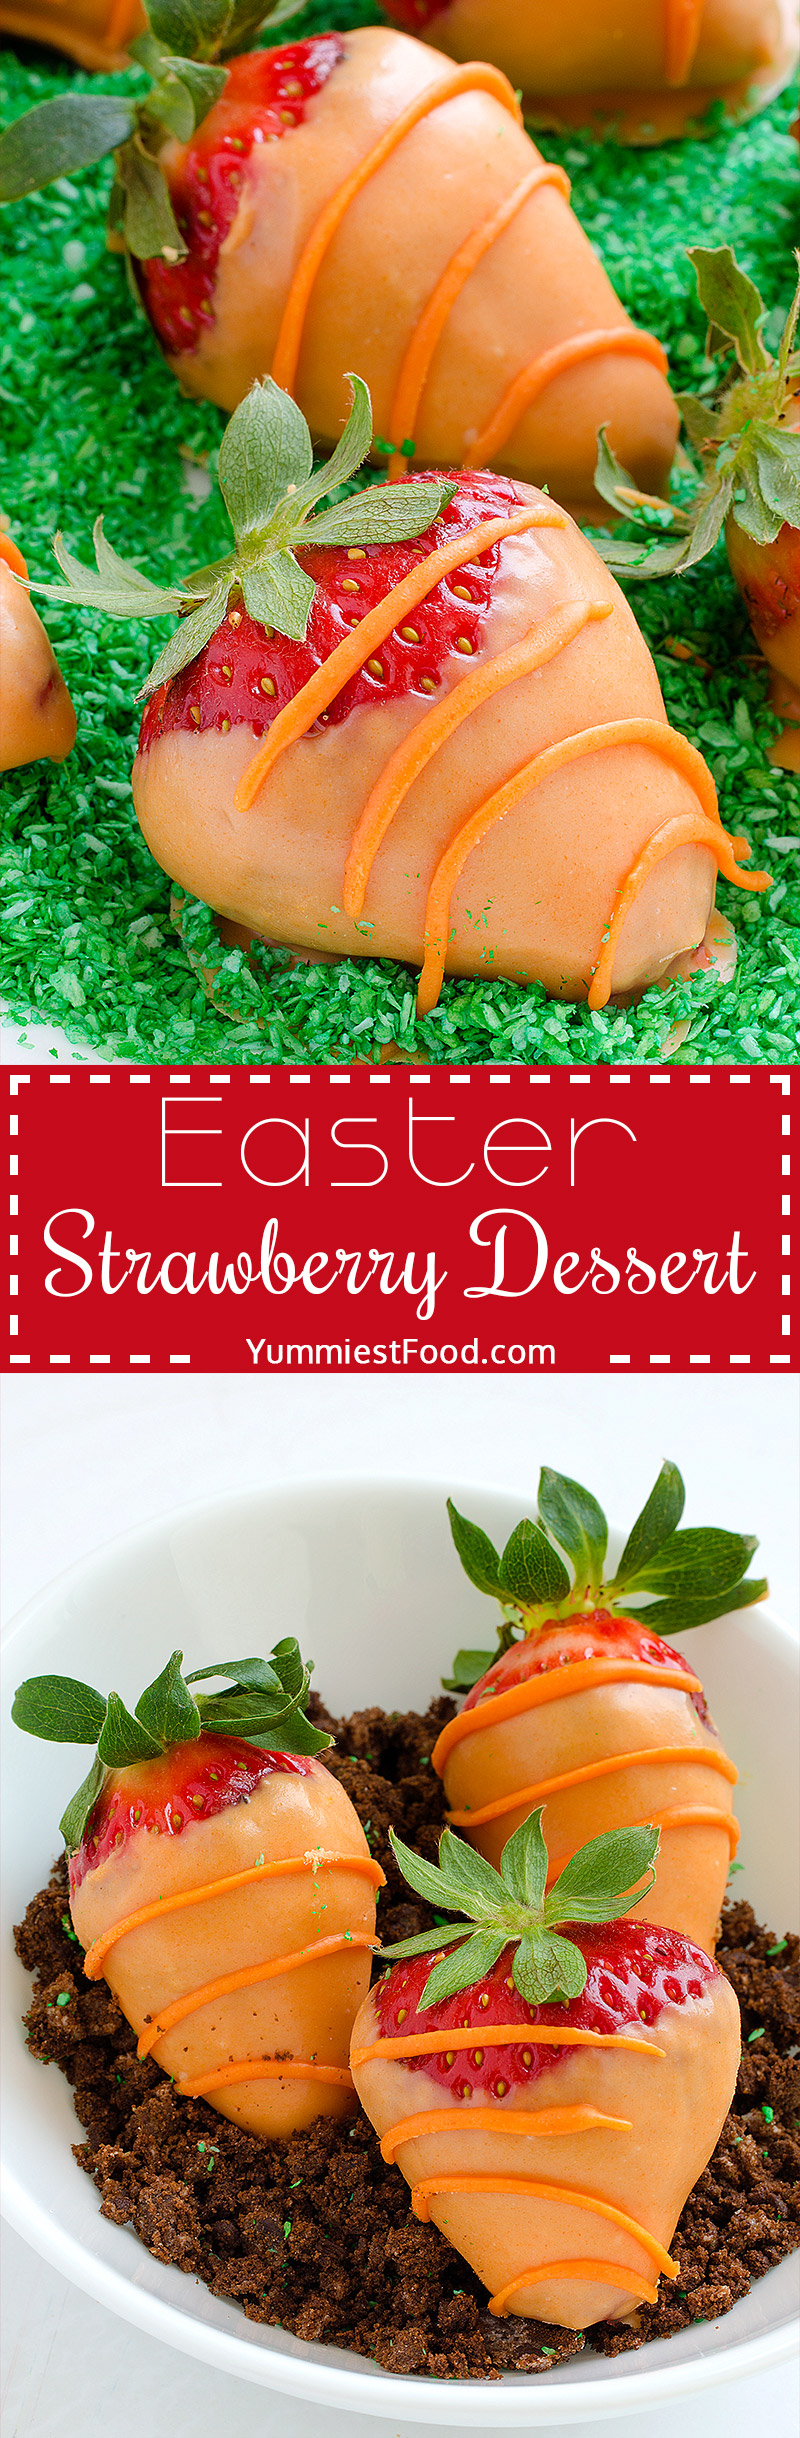 You only need a few ingredients for this Easter strawberry dessert, and your Easter family table will look incredible and full of imagination with this strawberry dessert